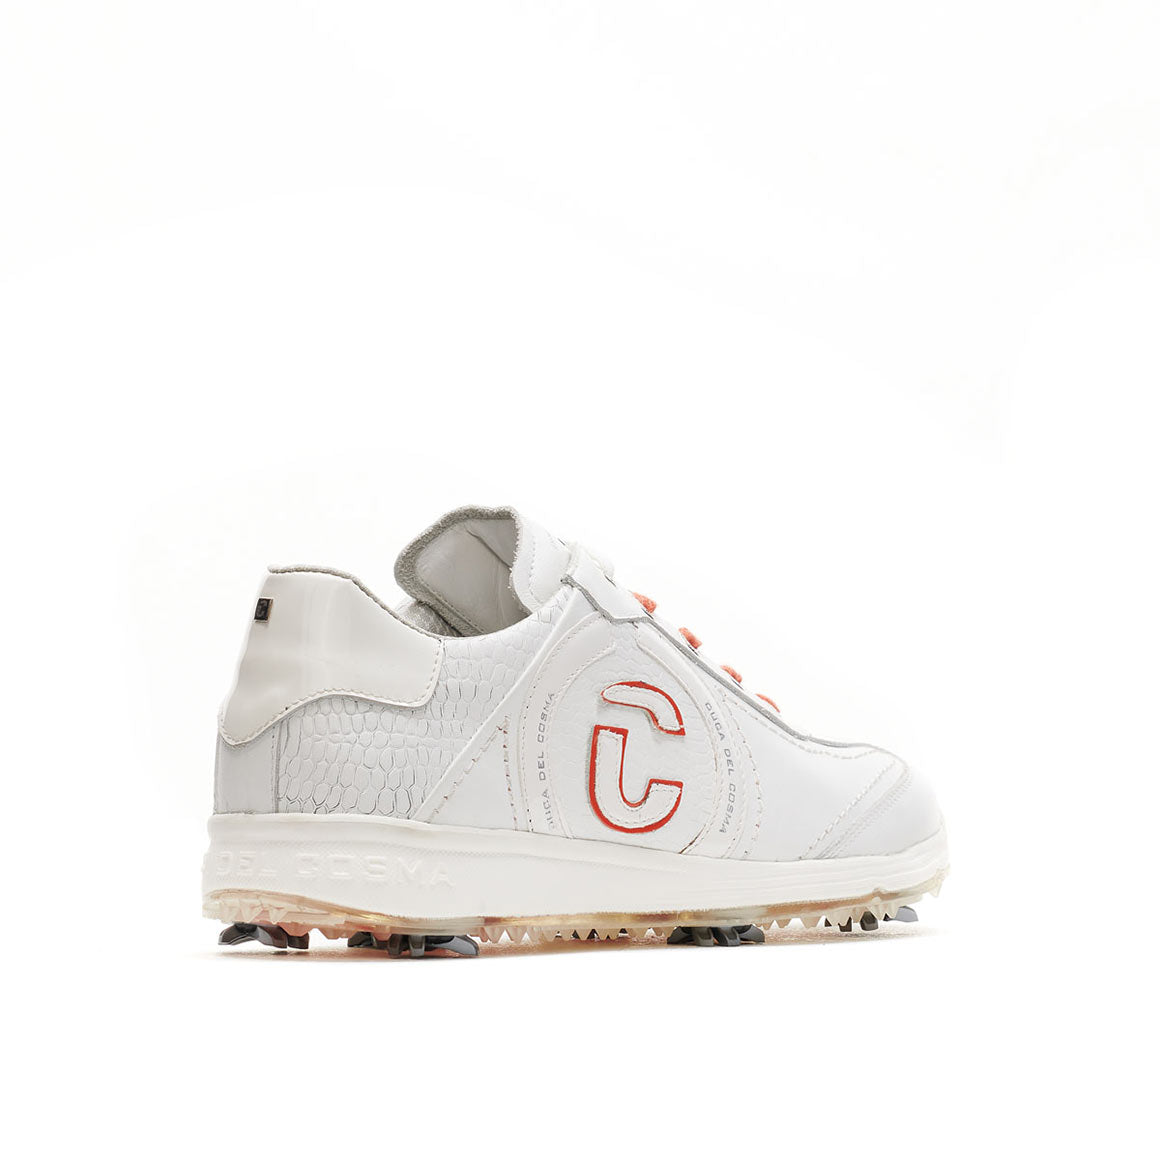 Men's Masters White Golf Shoe